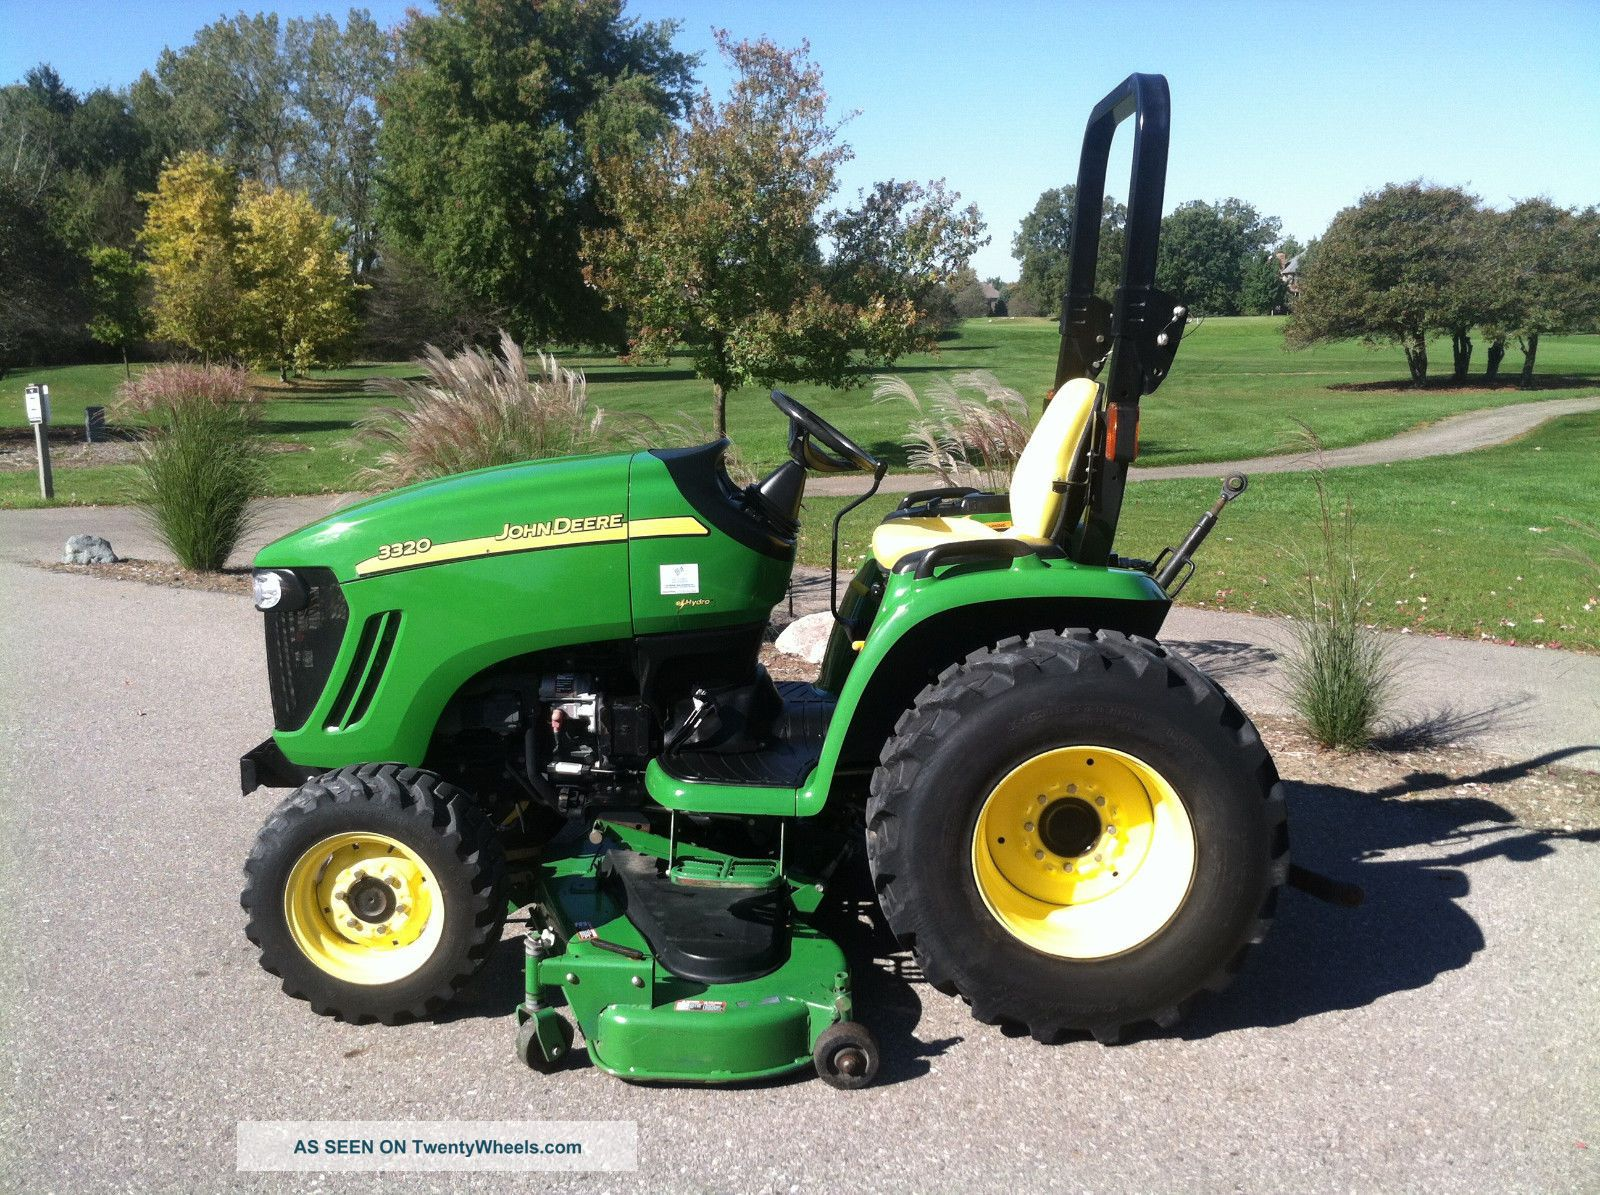 2007 John Deere 3320 Compact Utility Tractor, 72 Deck, 3pt, Mid & Rear ...